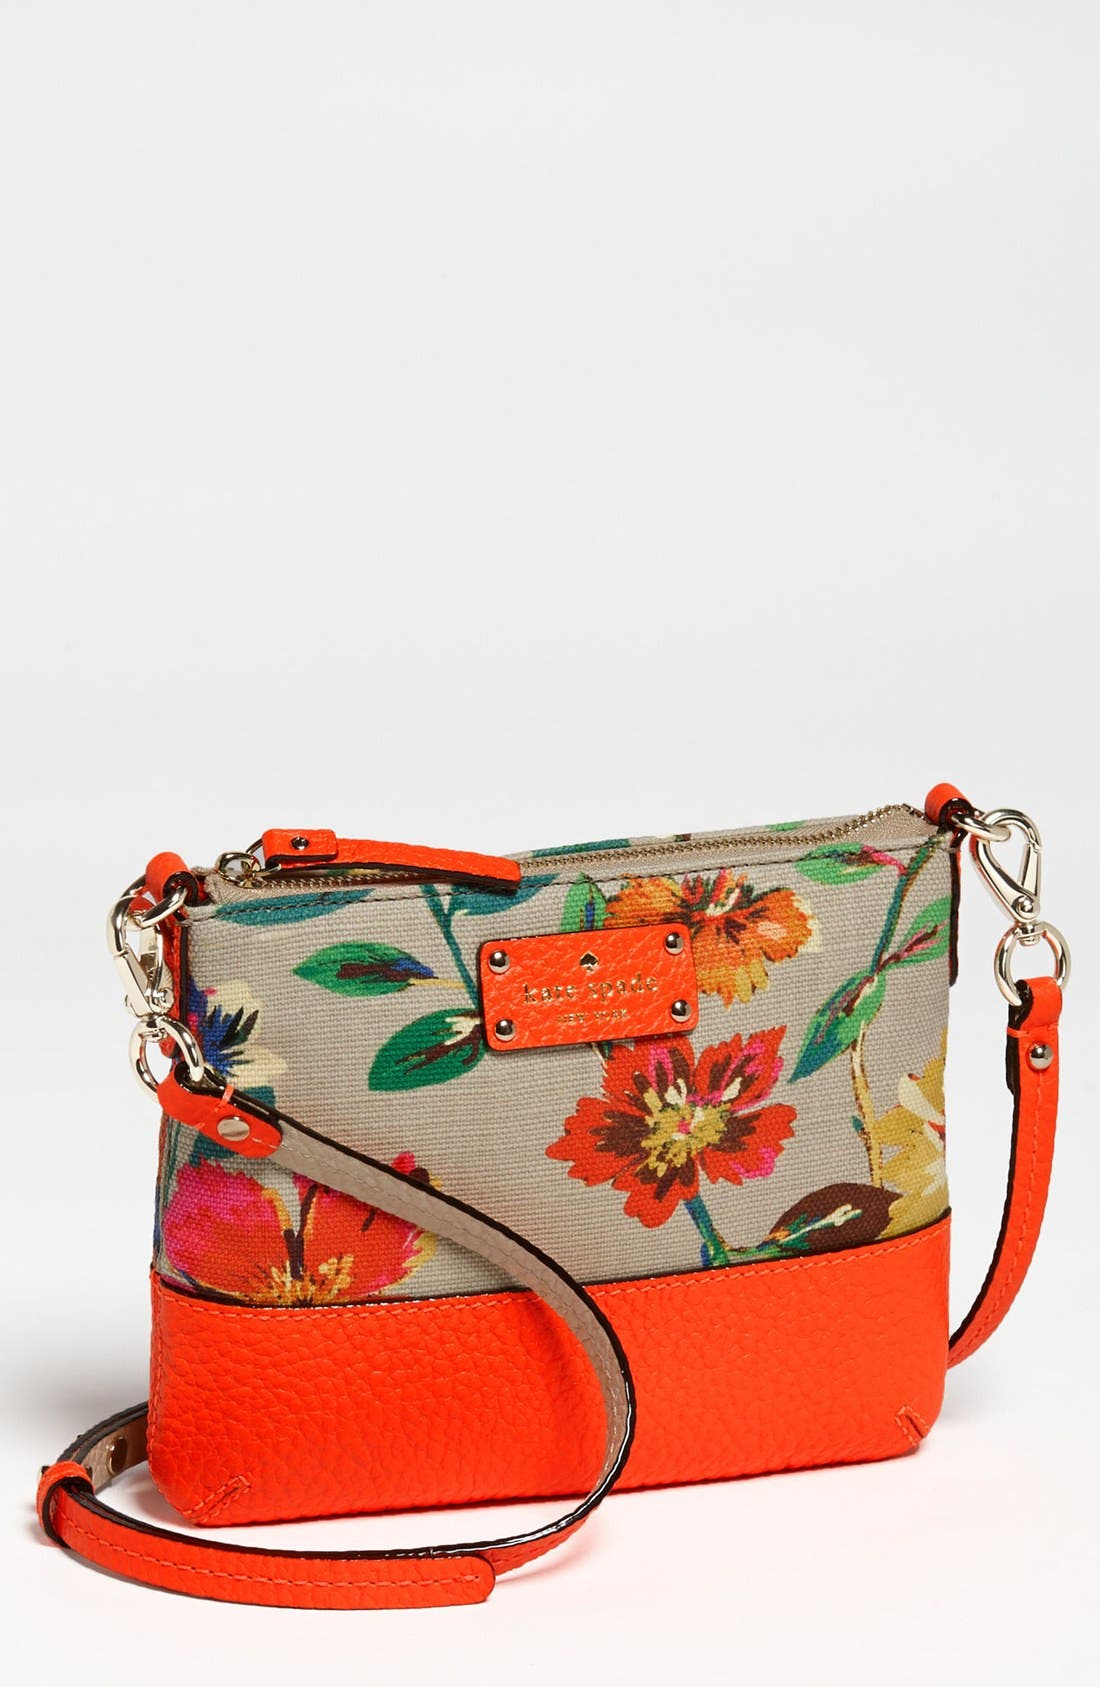 Alternate Image 1 Selected - kate spade new york 'grove court floral - tenley' crossbody bag